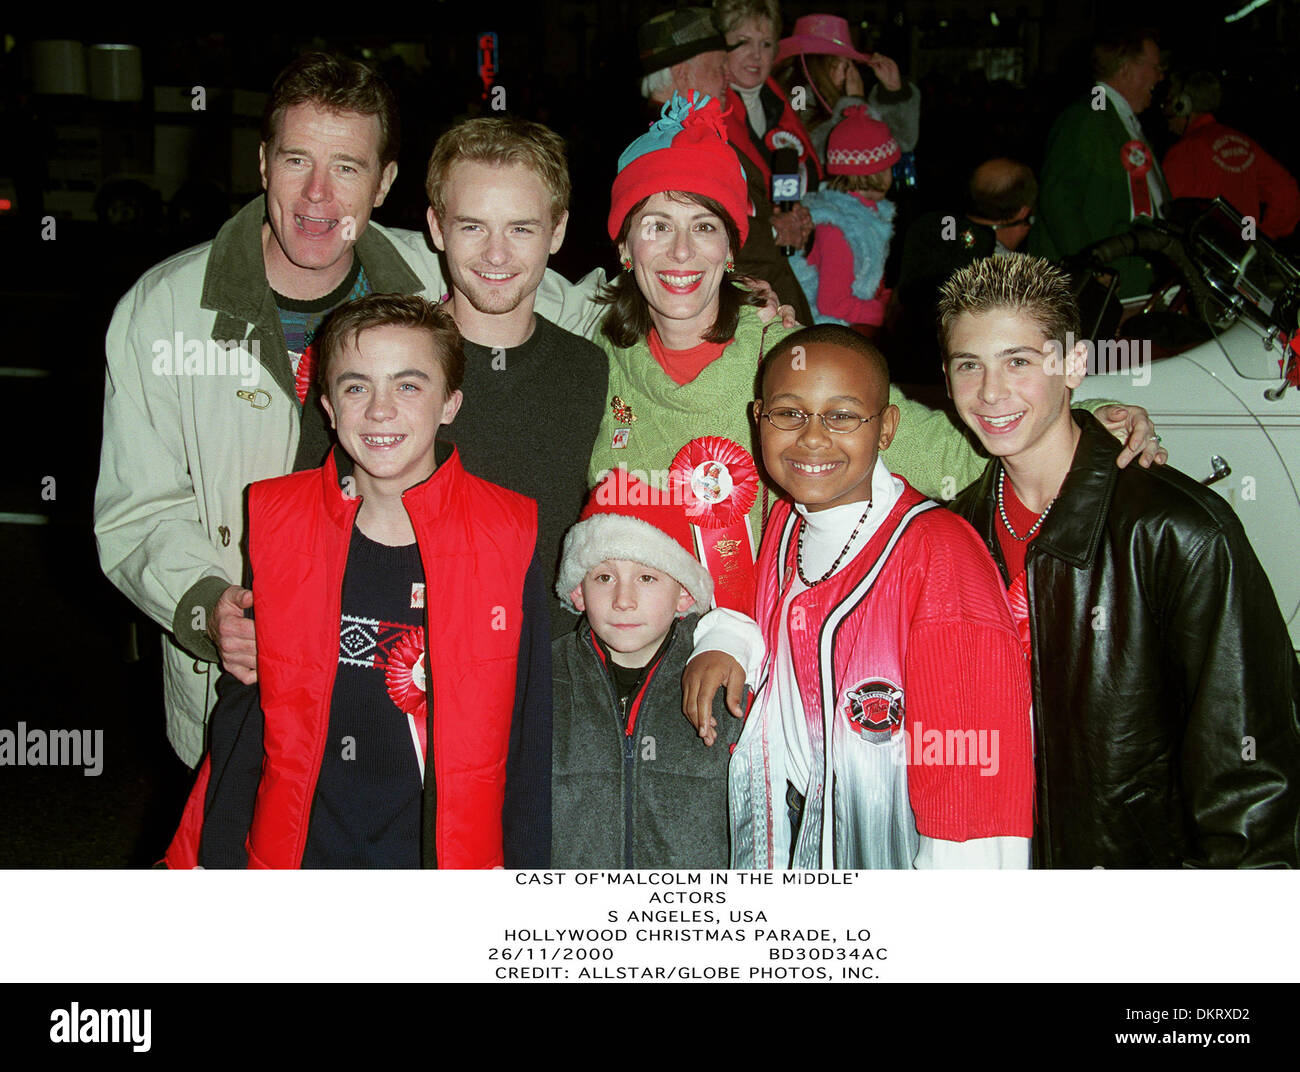 Malcolm In The Middle Christmas.Nov 26 2000 Hollywood Christmas Parade Lo Cast Of